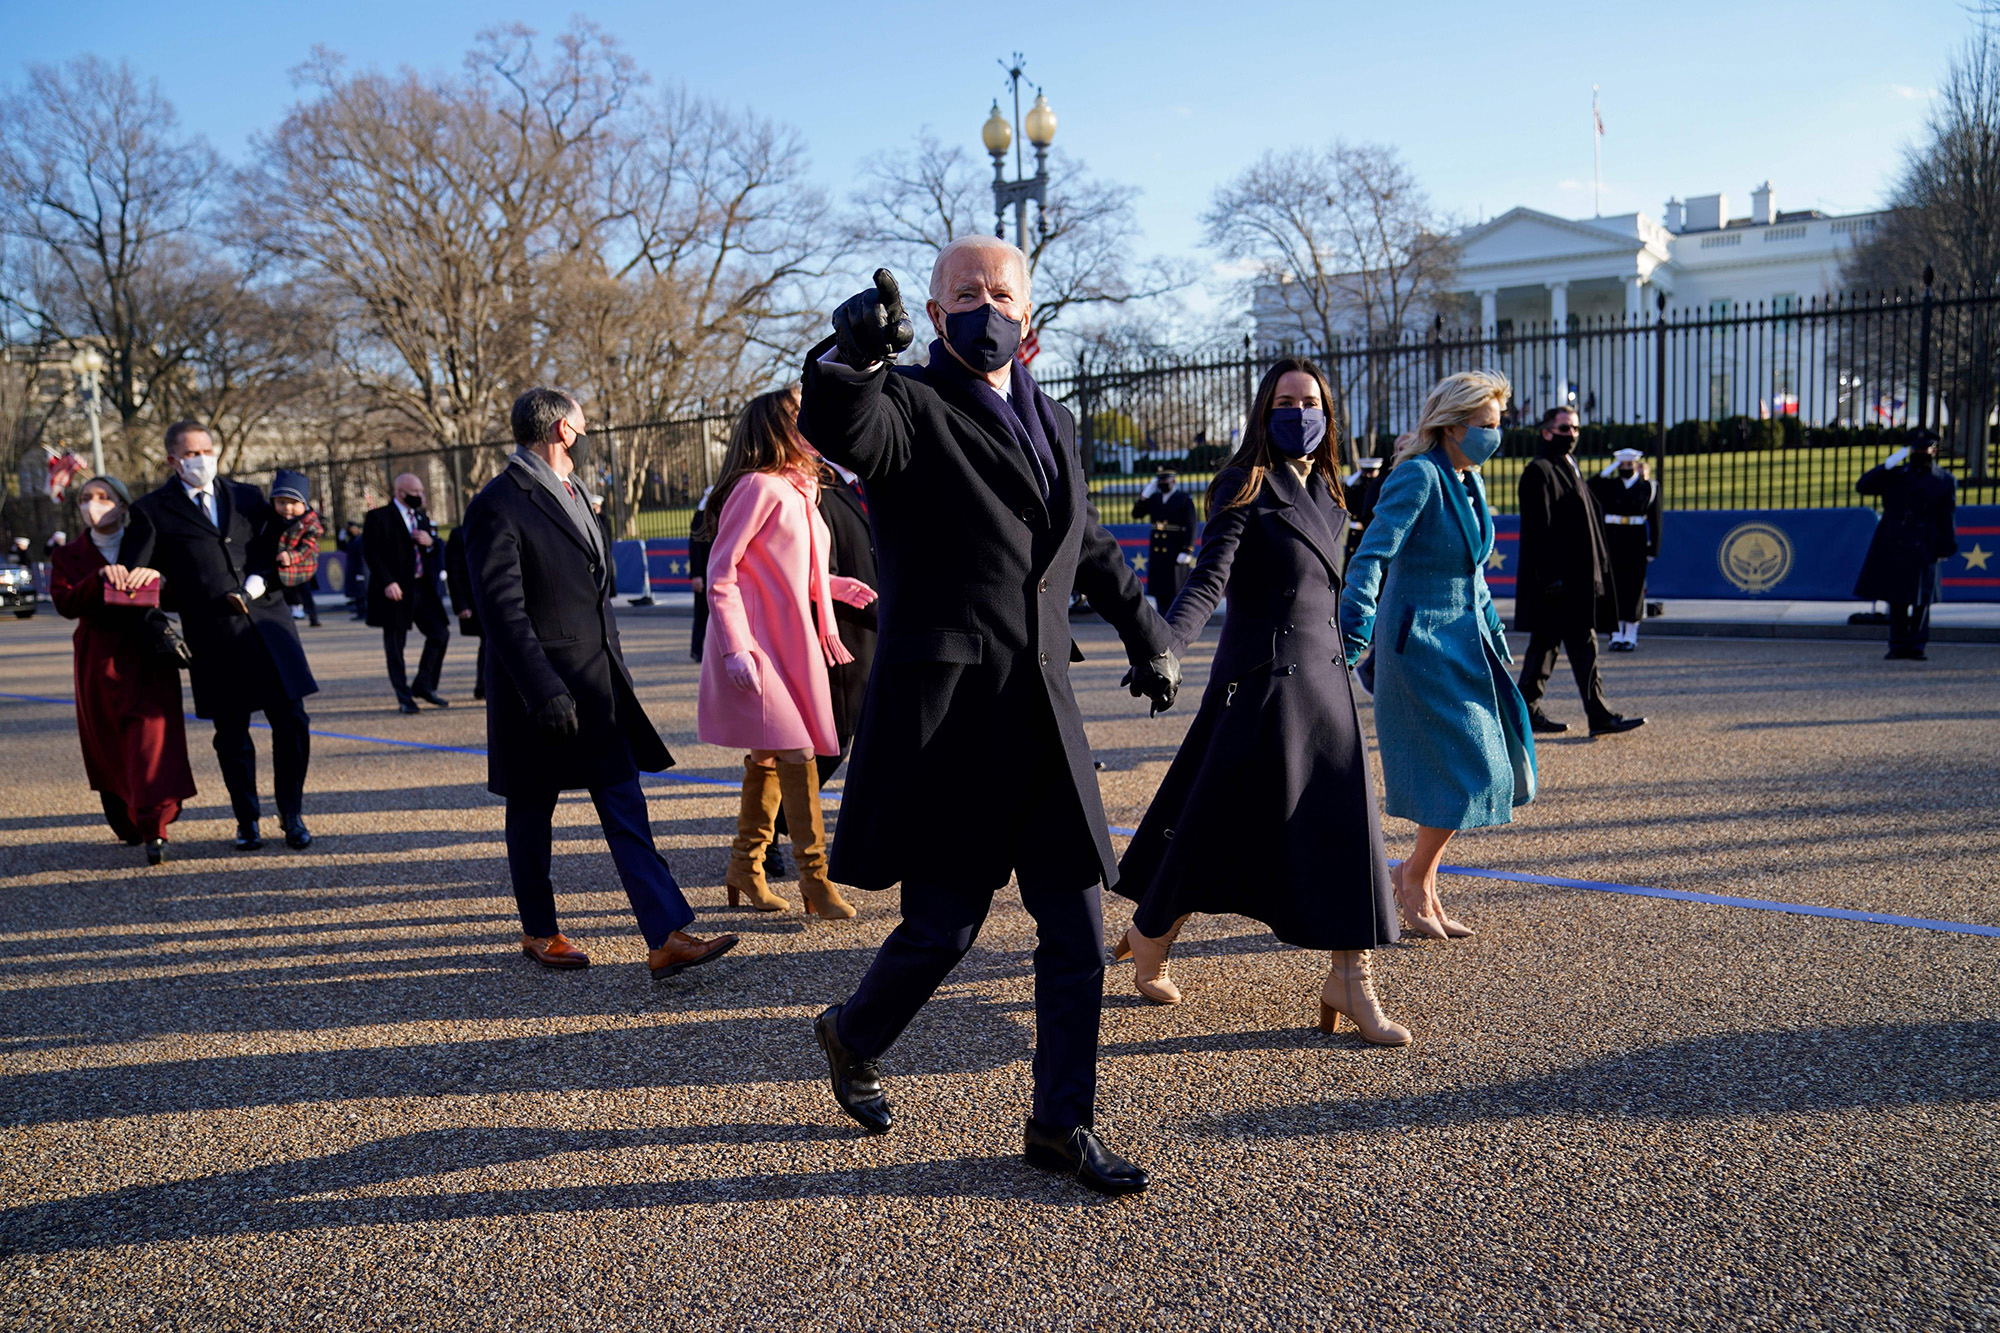 President Joe Biden and first lady Jill Biden walk up Pennsylvania Avenue towards the White House in Washington after Biden and Kamala Harris were sworn in at the Capitol on Jan. 20, 202. (Doug Mills/Pool, AFP via Getty Images)